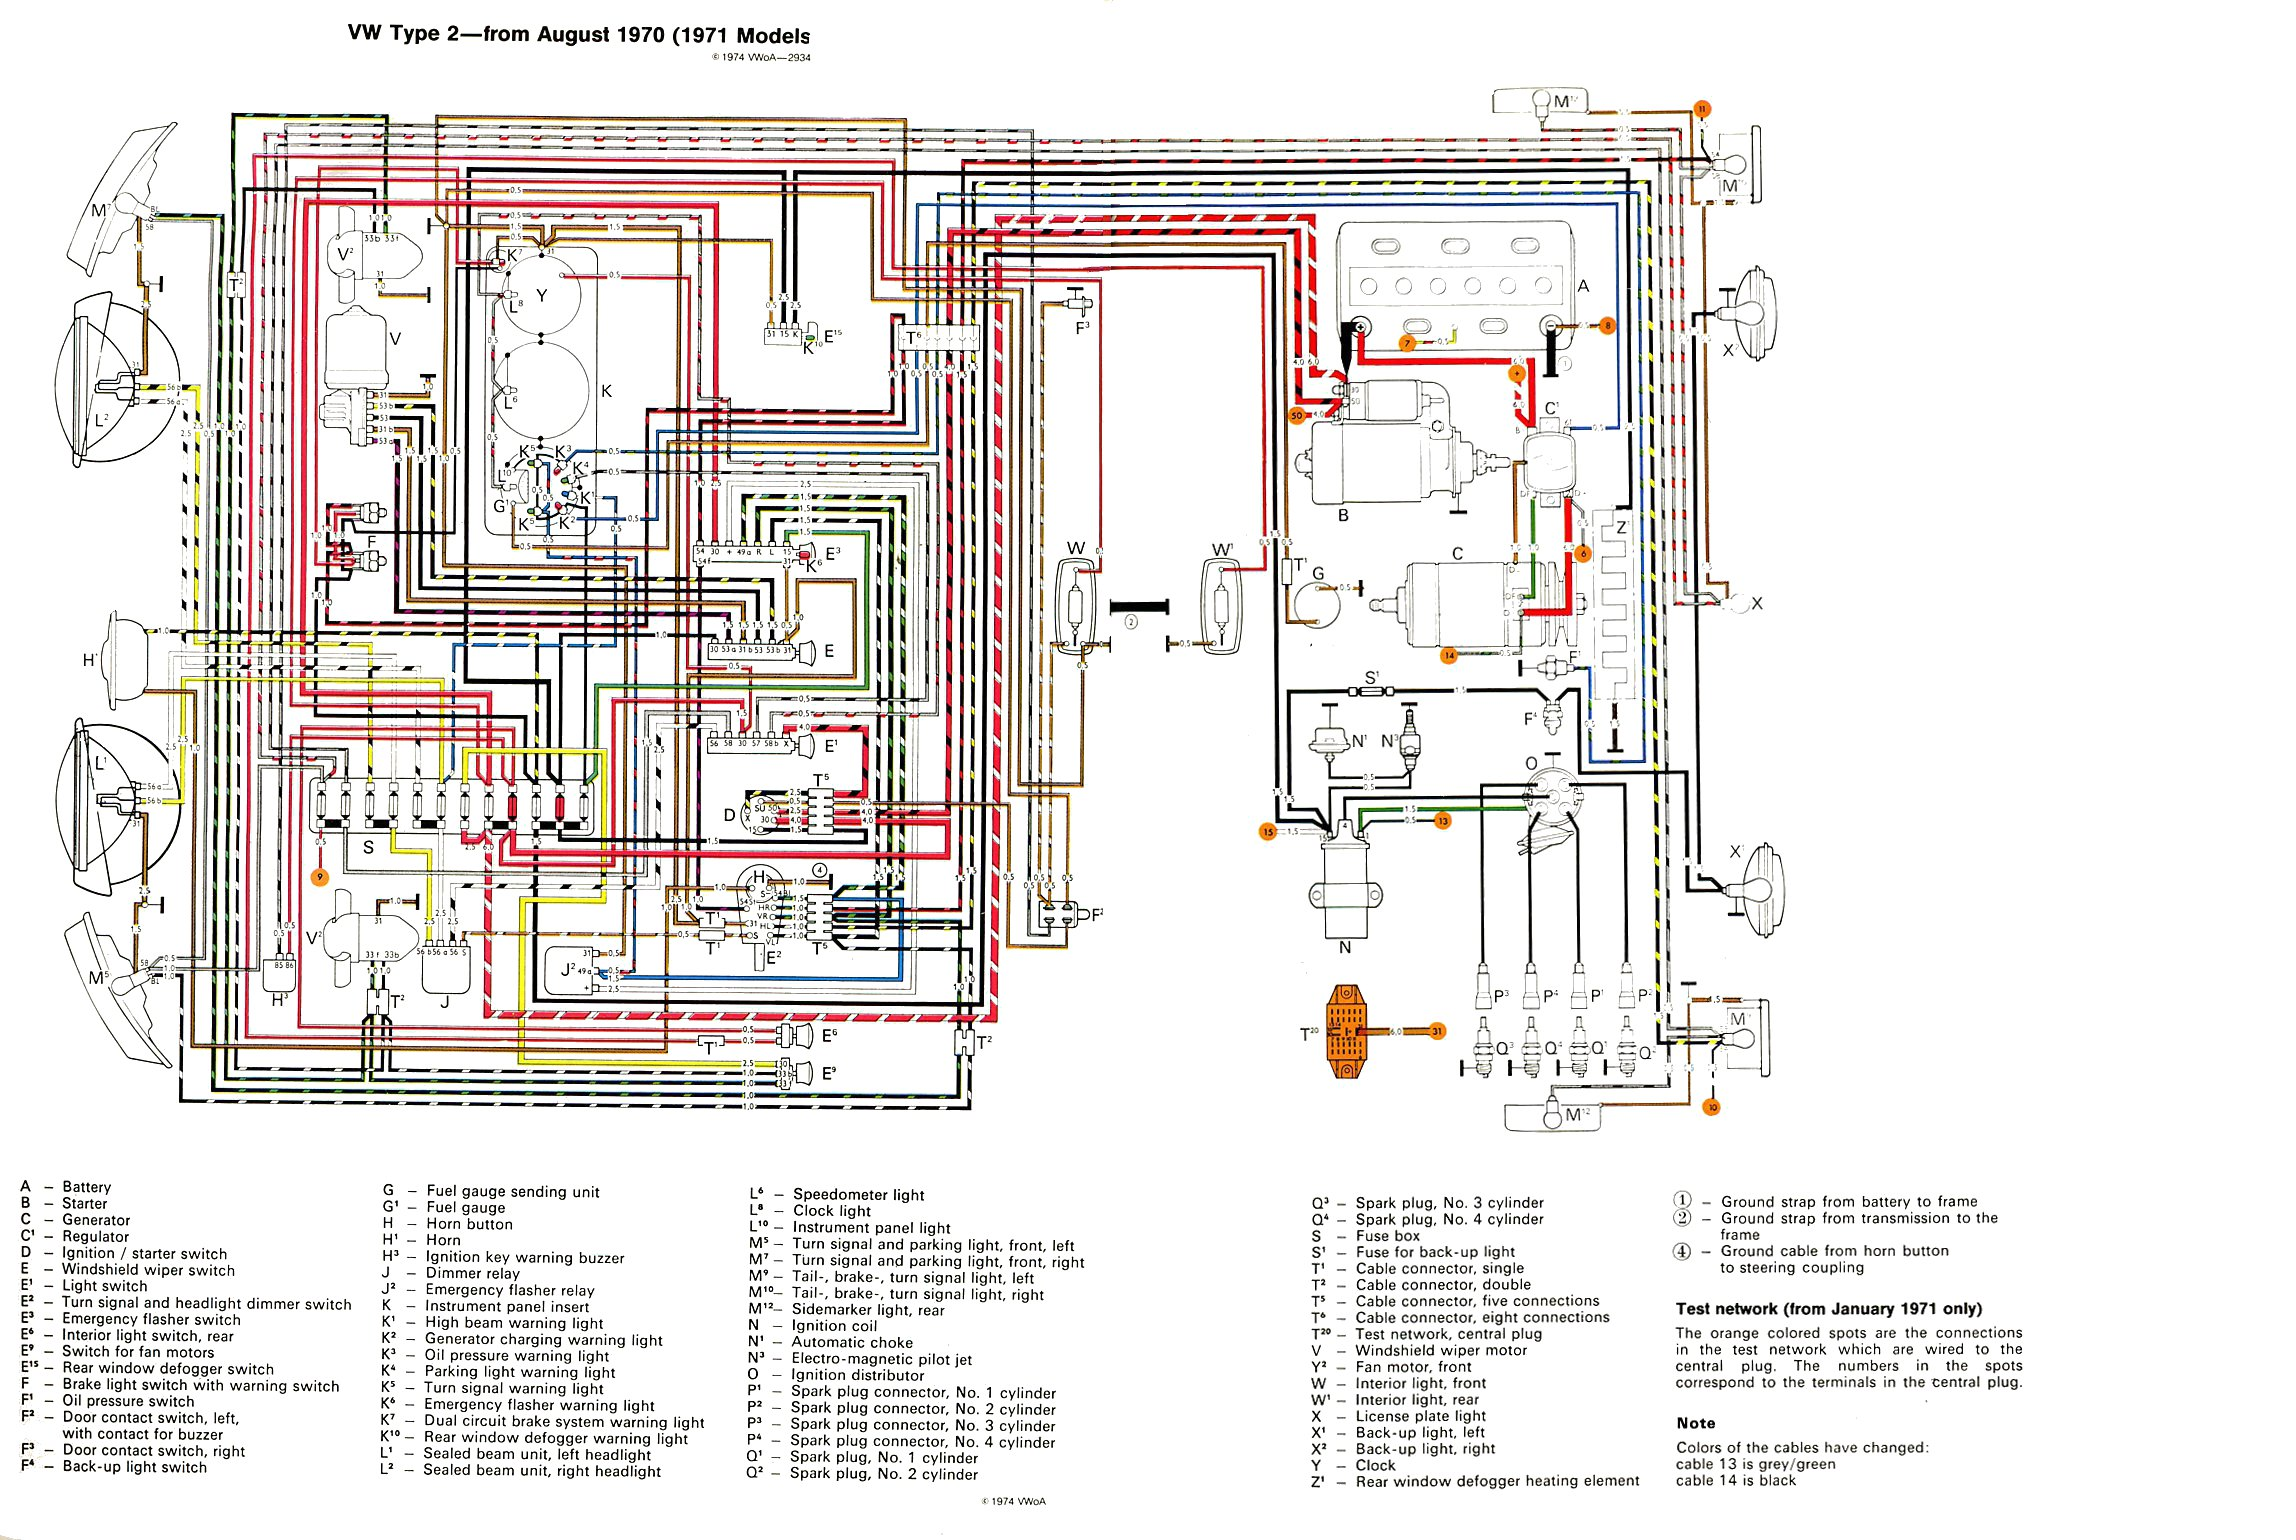 1969 Corvette Fuse Diagram For Wiring Services 2012 F350 Box Thesamba Com Type 2 Diagrams Rh Ford 2002